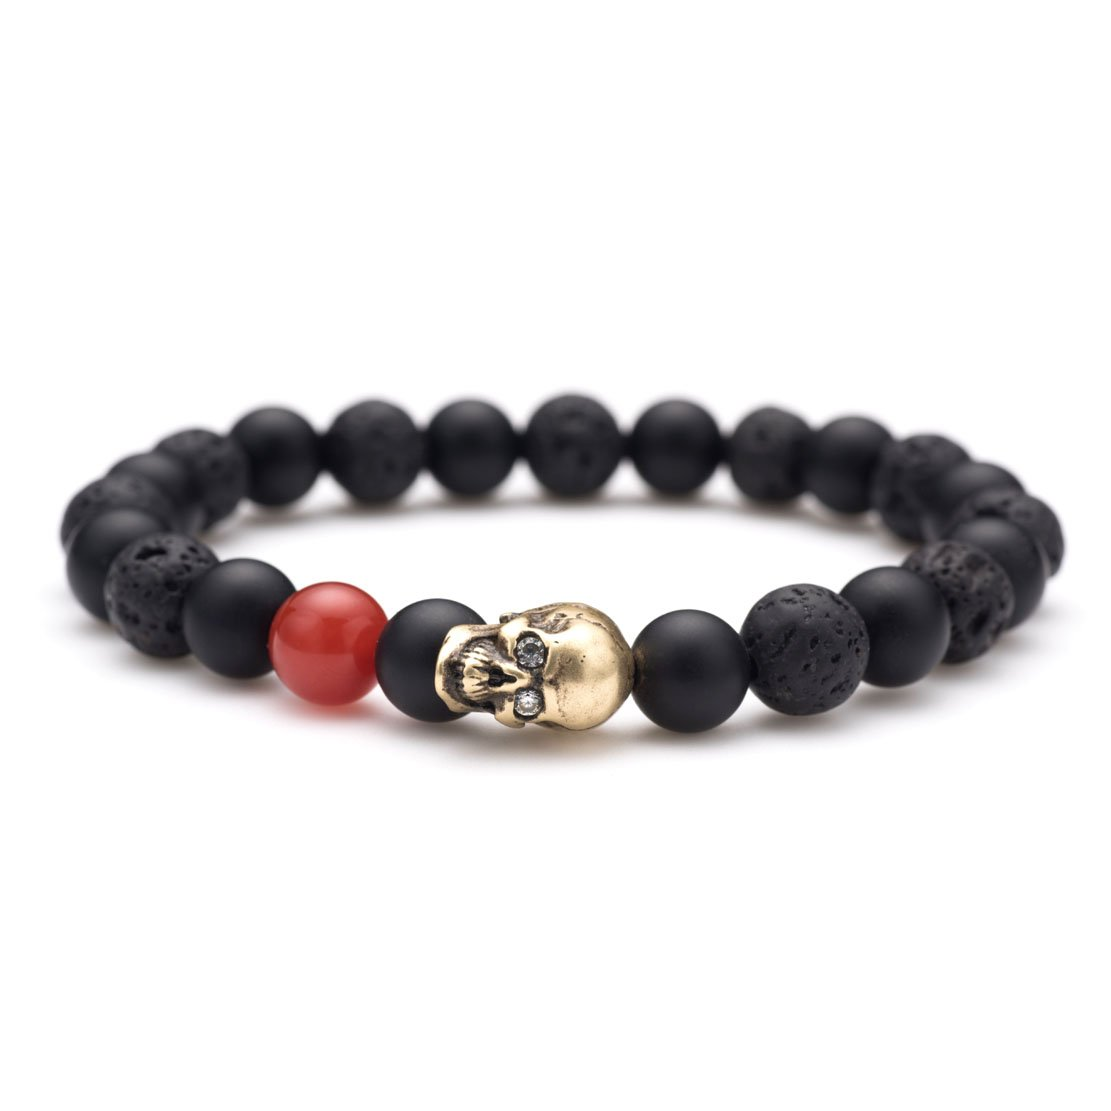 Karseer Black Matte Onyx and Lava Energy Stone Beaded Stretch Bracelet, Retro Bronze Skull Gothic Punk Charm with Red Agate Emphasized Personality Bangle Jewelry Birthday Gift Unisex 7'' by Karseer